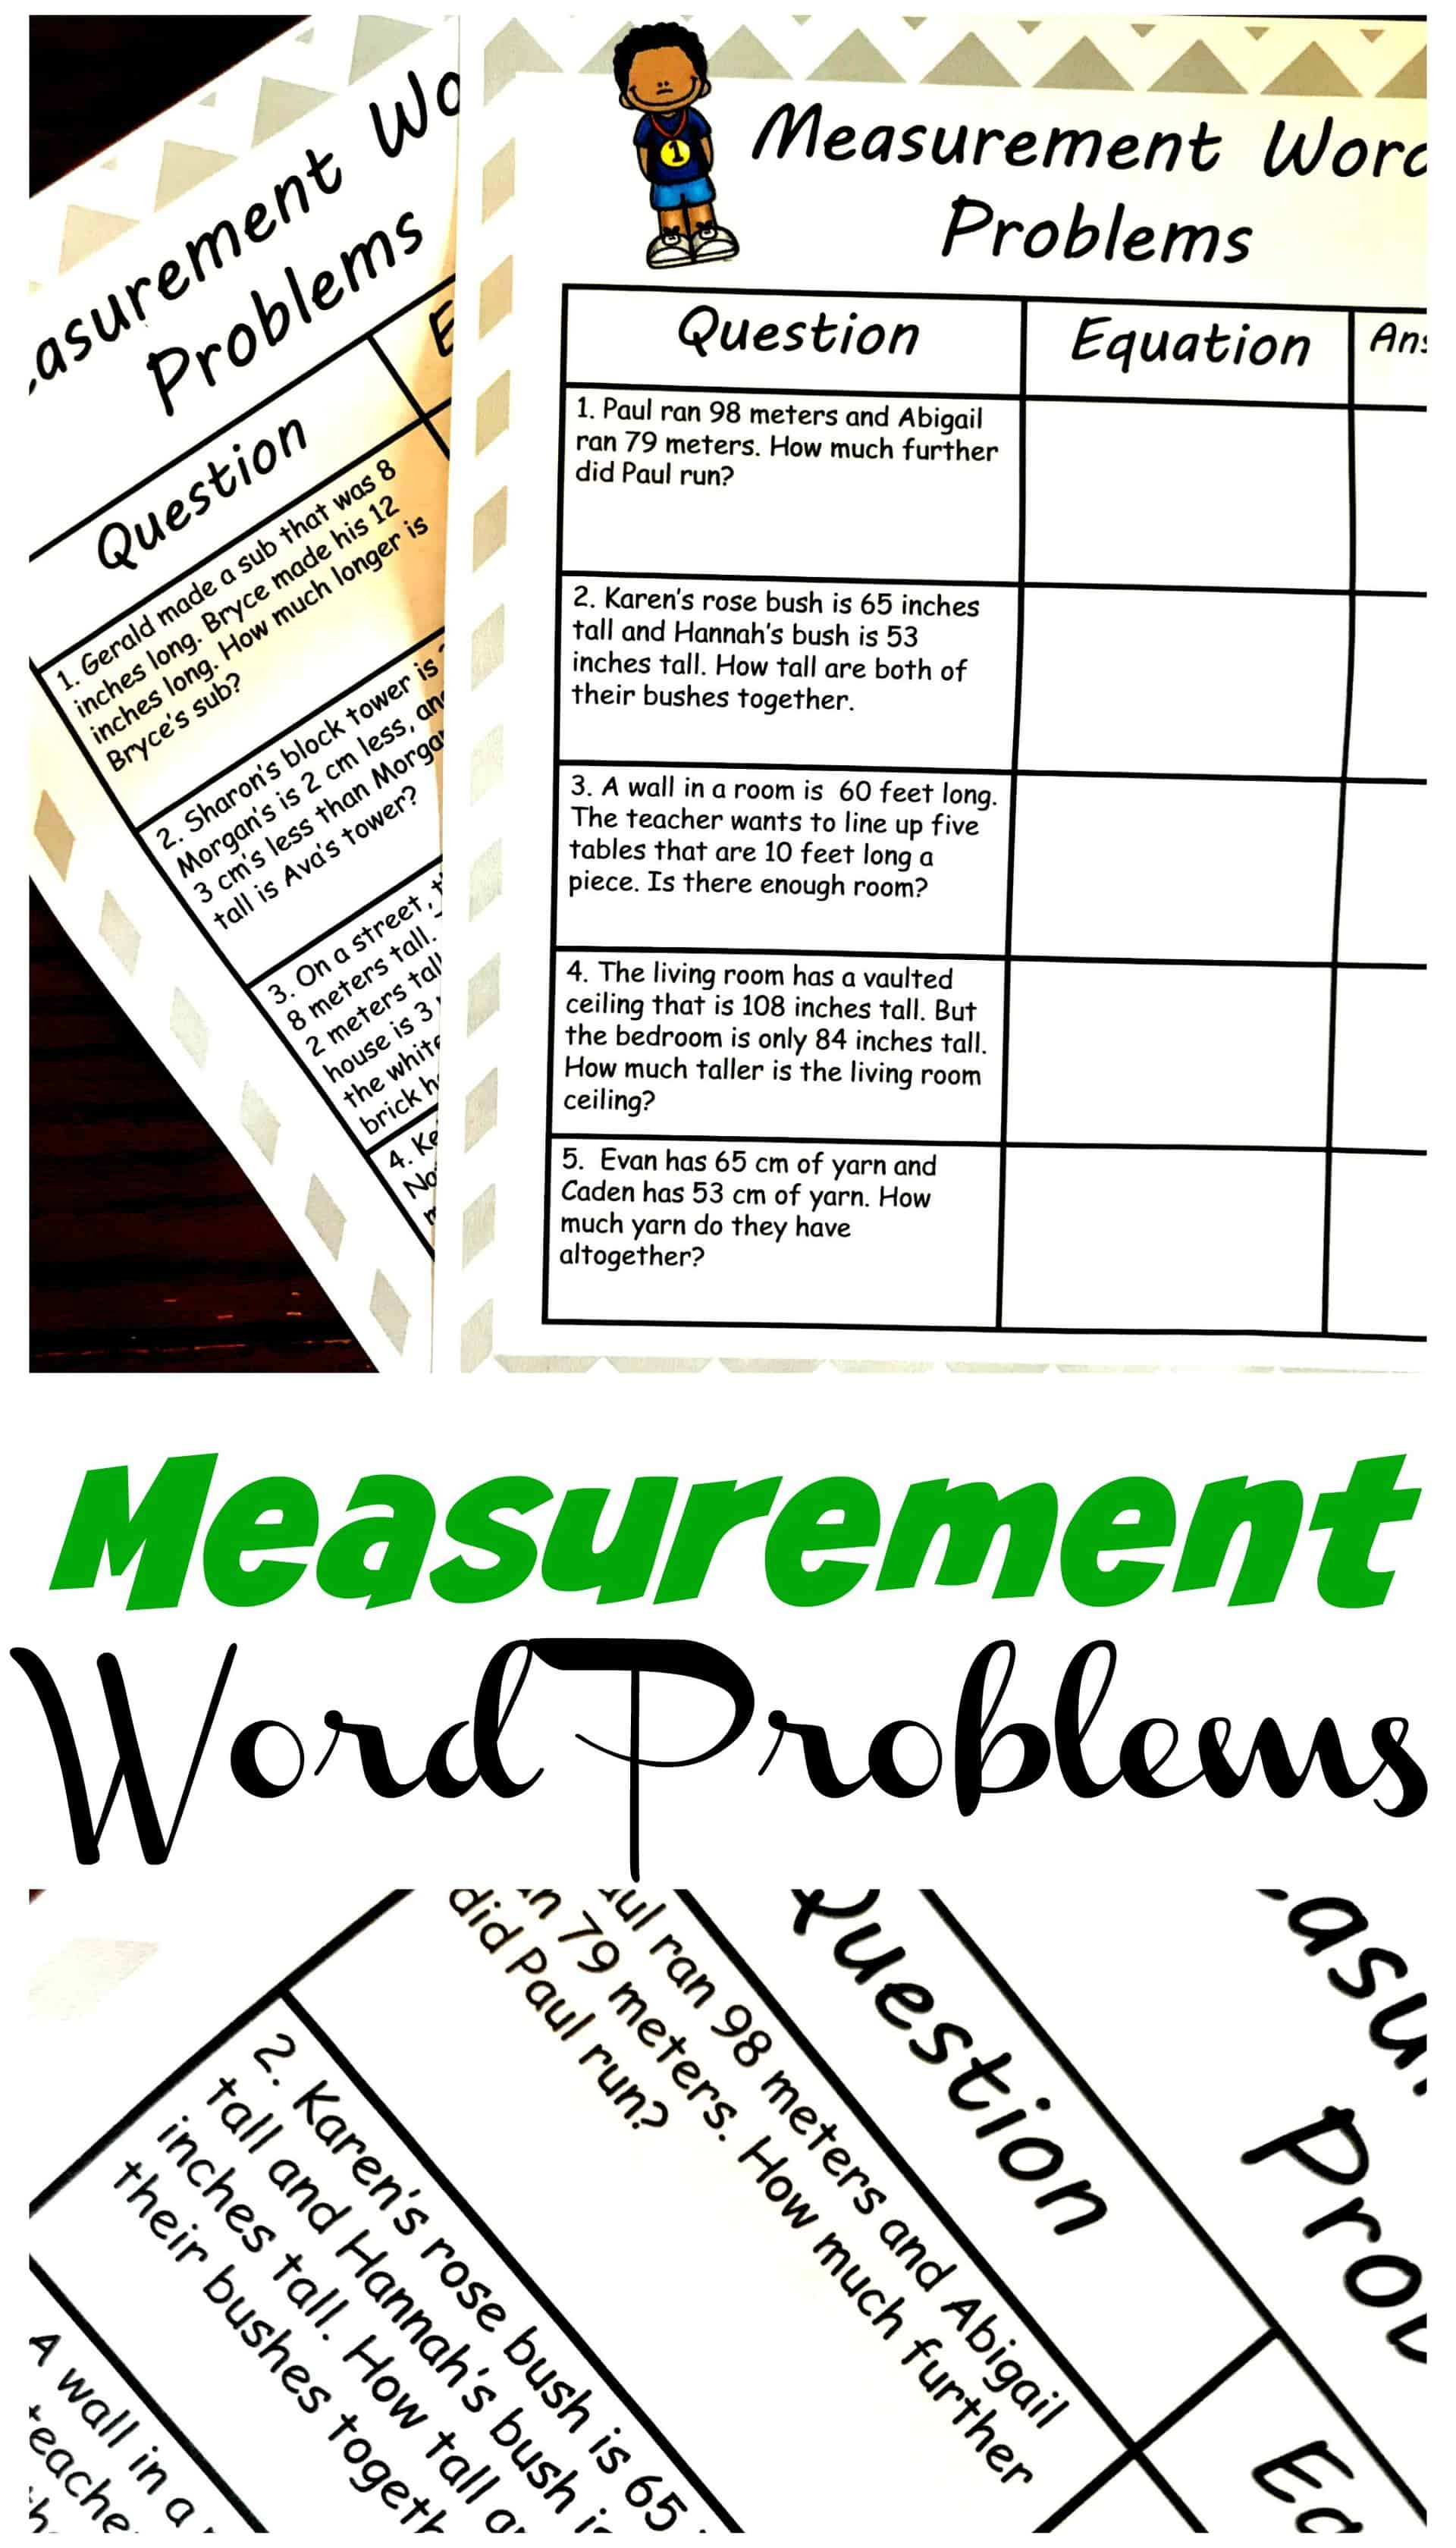 Two Simple Measurement Word Problems Worksheets [ 3400 x 1943 Pixel ]